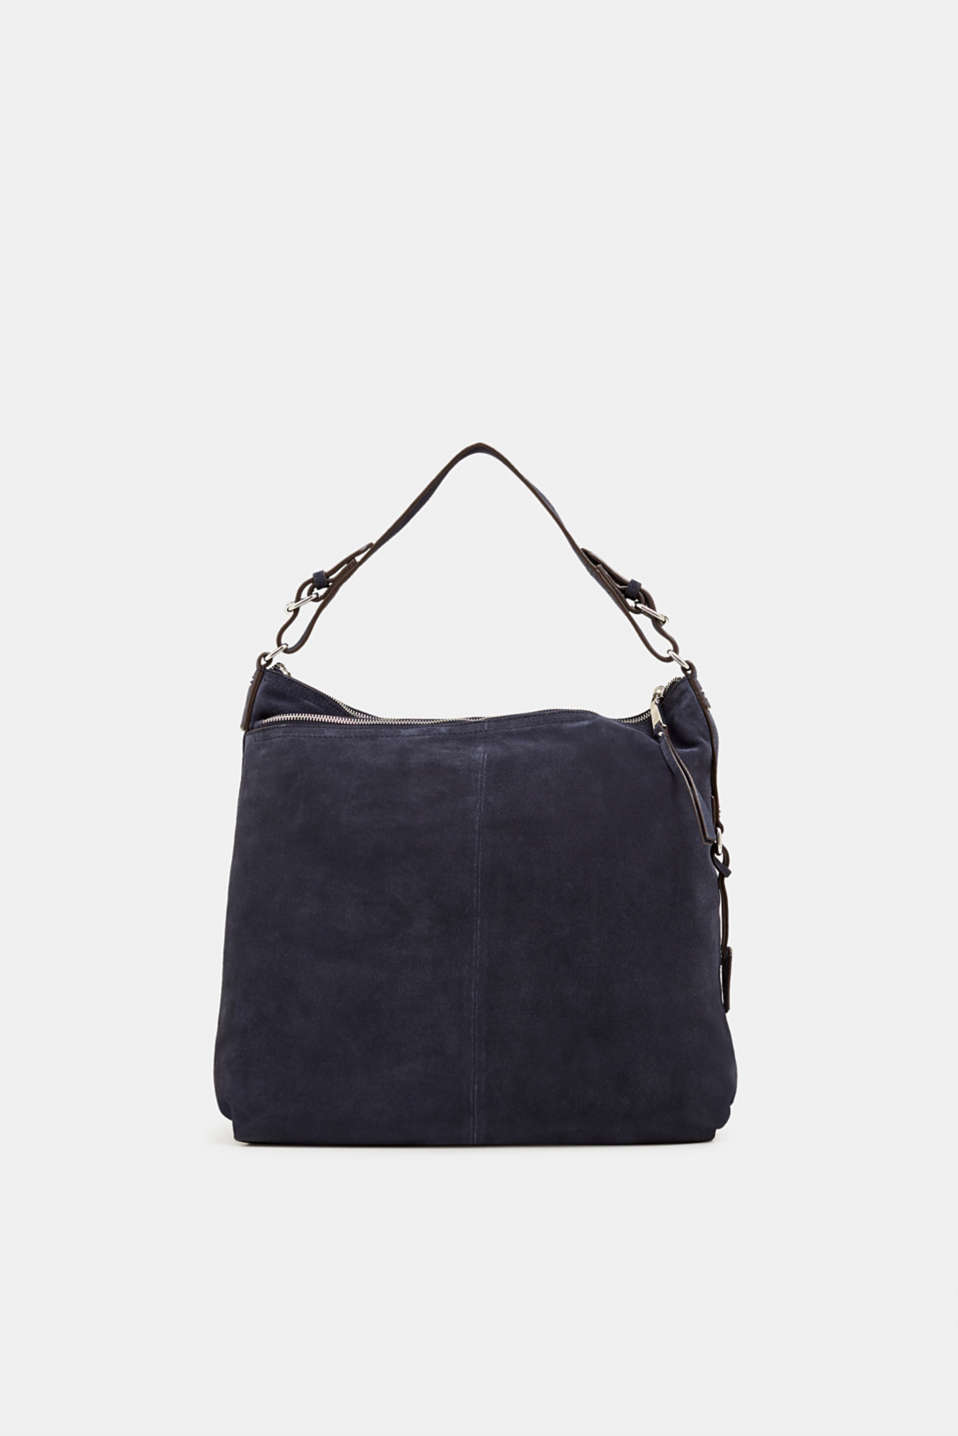 Leather hobo bag, NAVY, detail image number 0